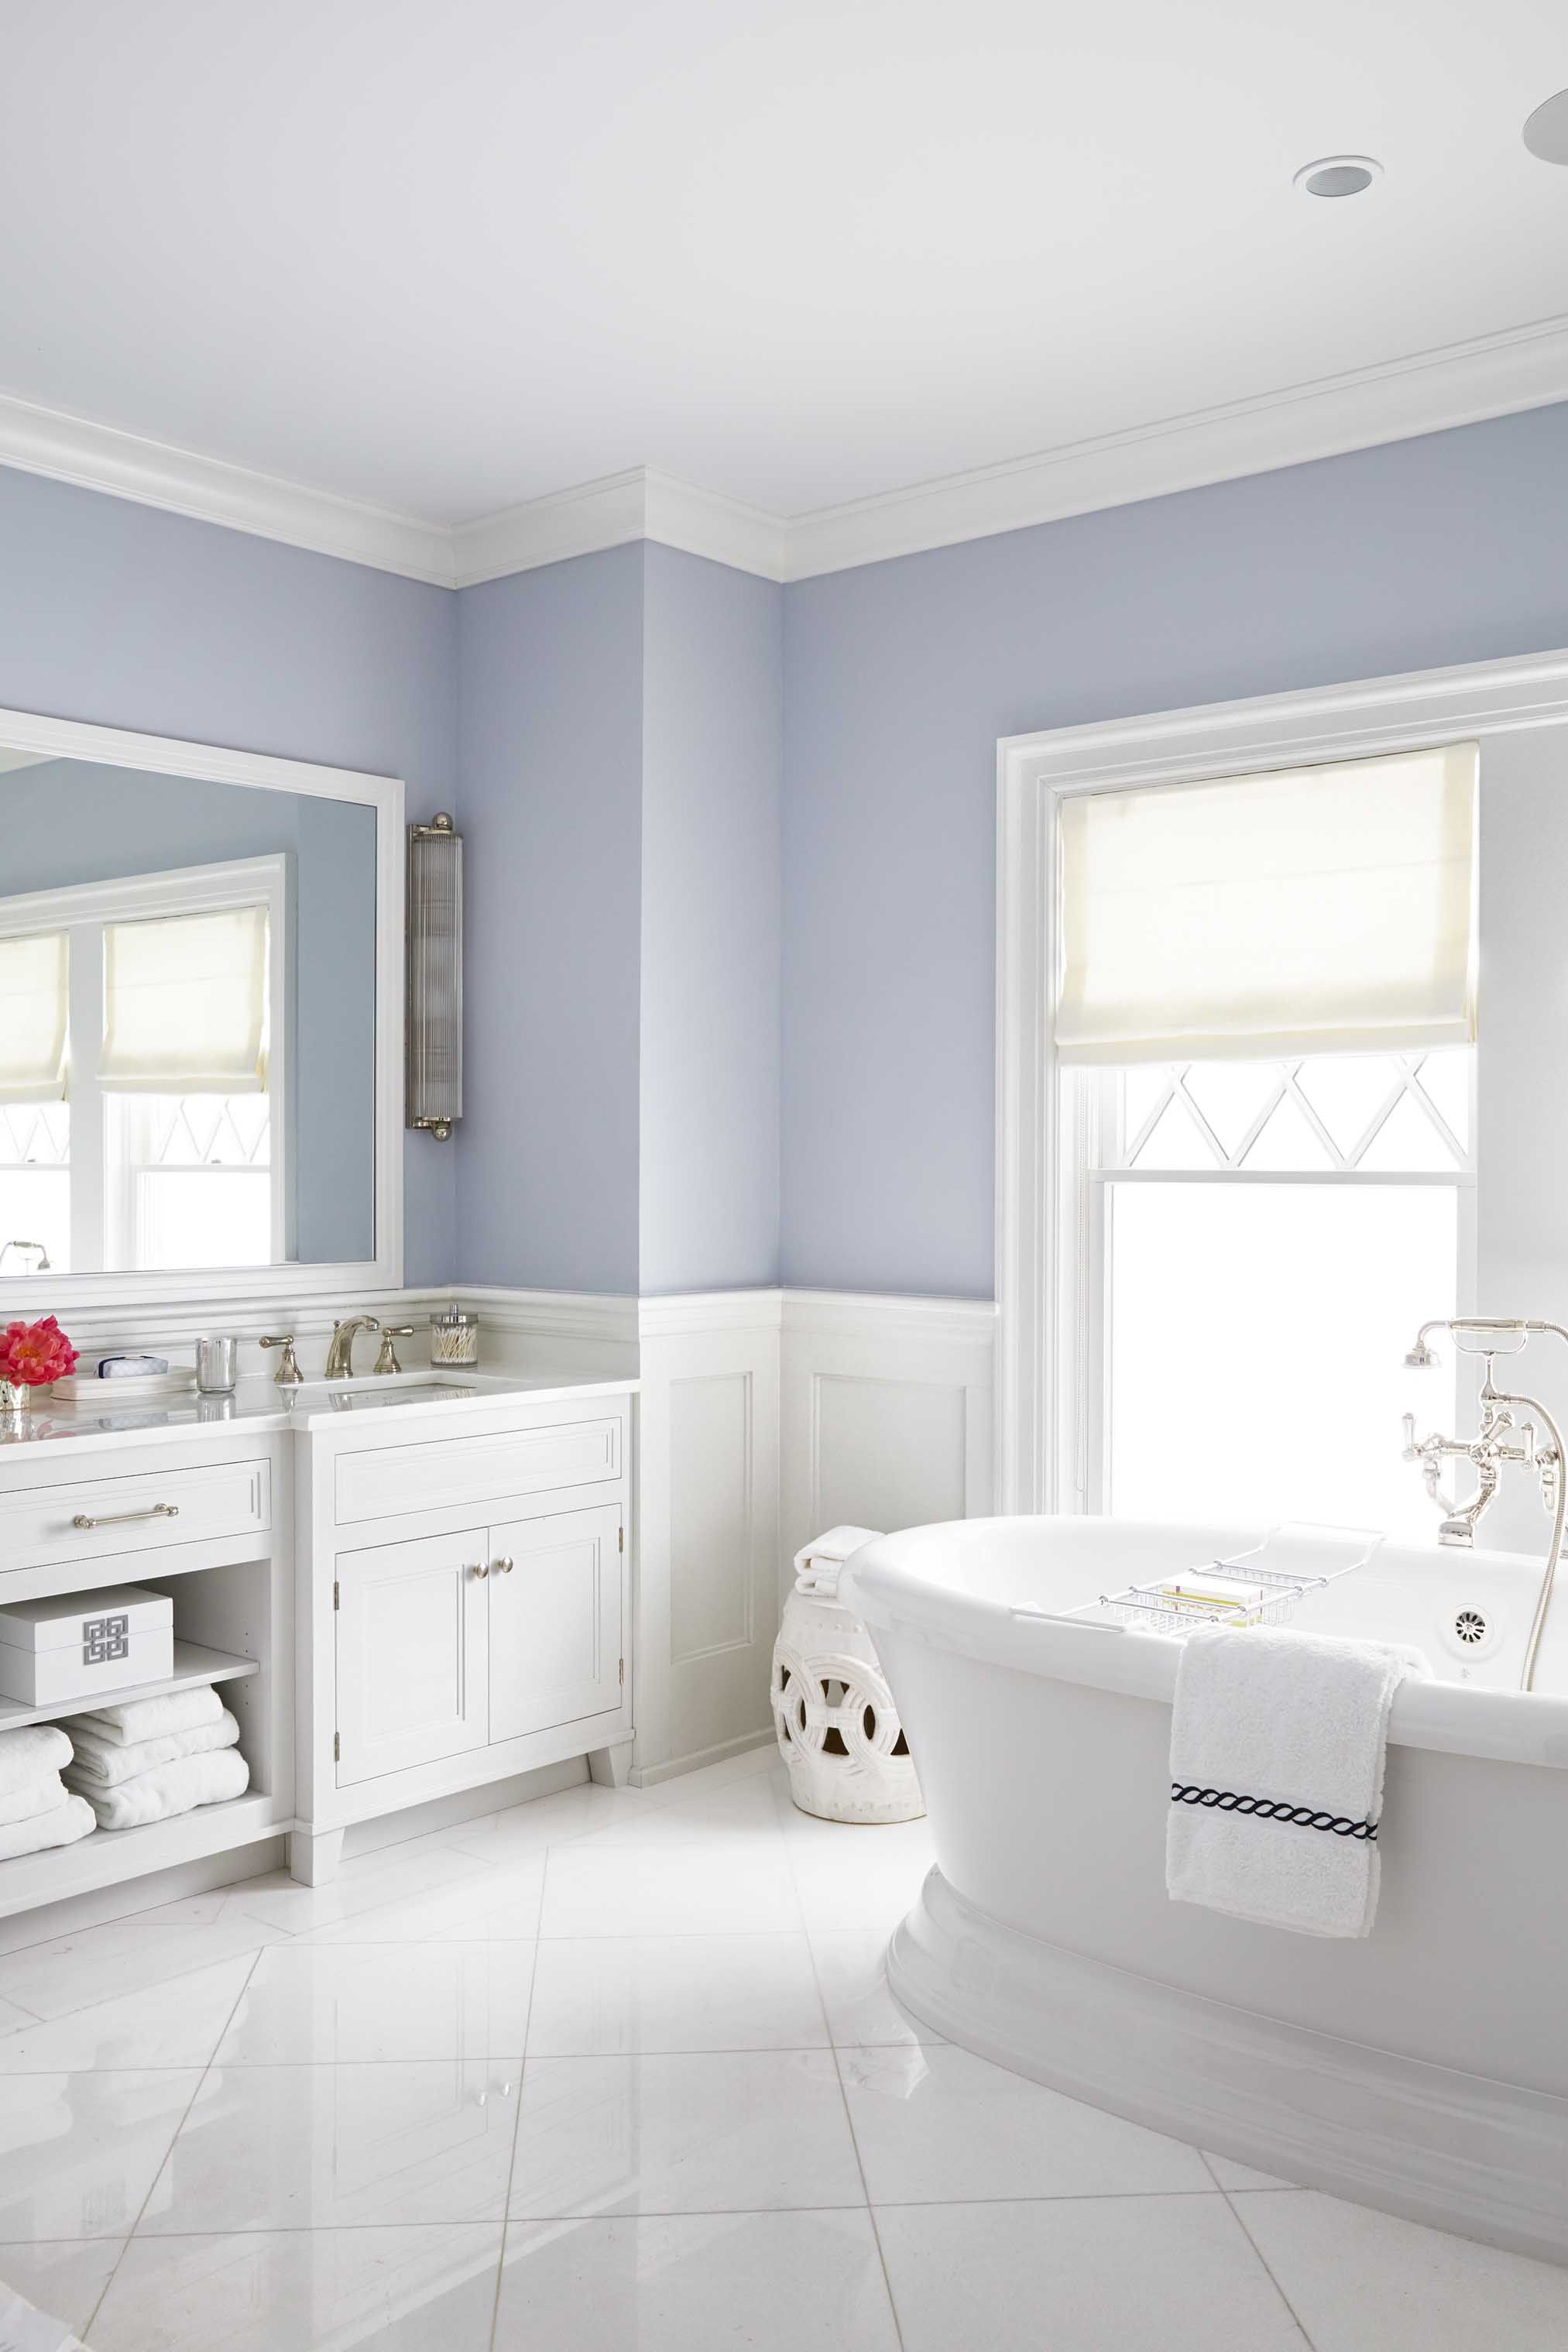 25 Best Bathroom Paint Colors Popular Ideas For Bathroom Wall Colors,Room Clothes Organizer Ideas